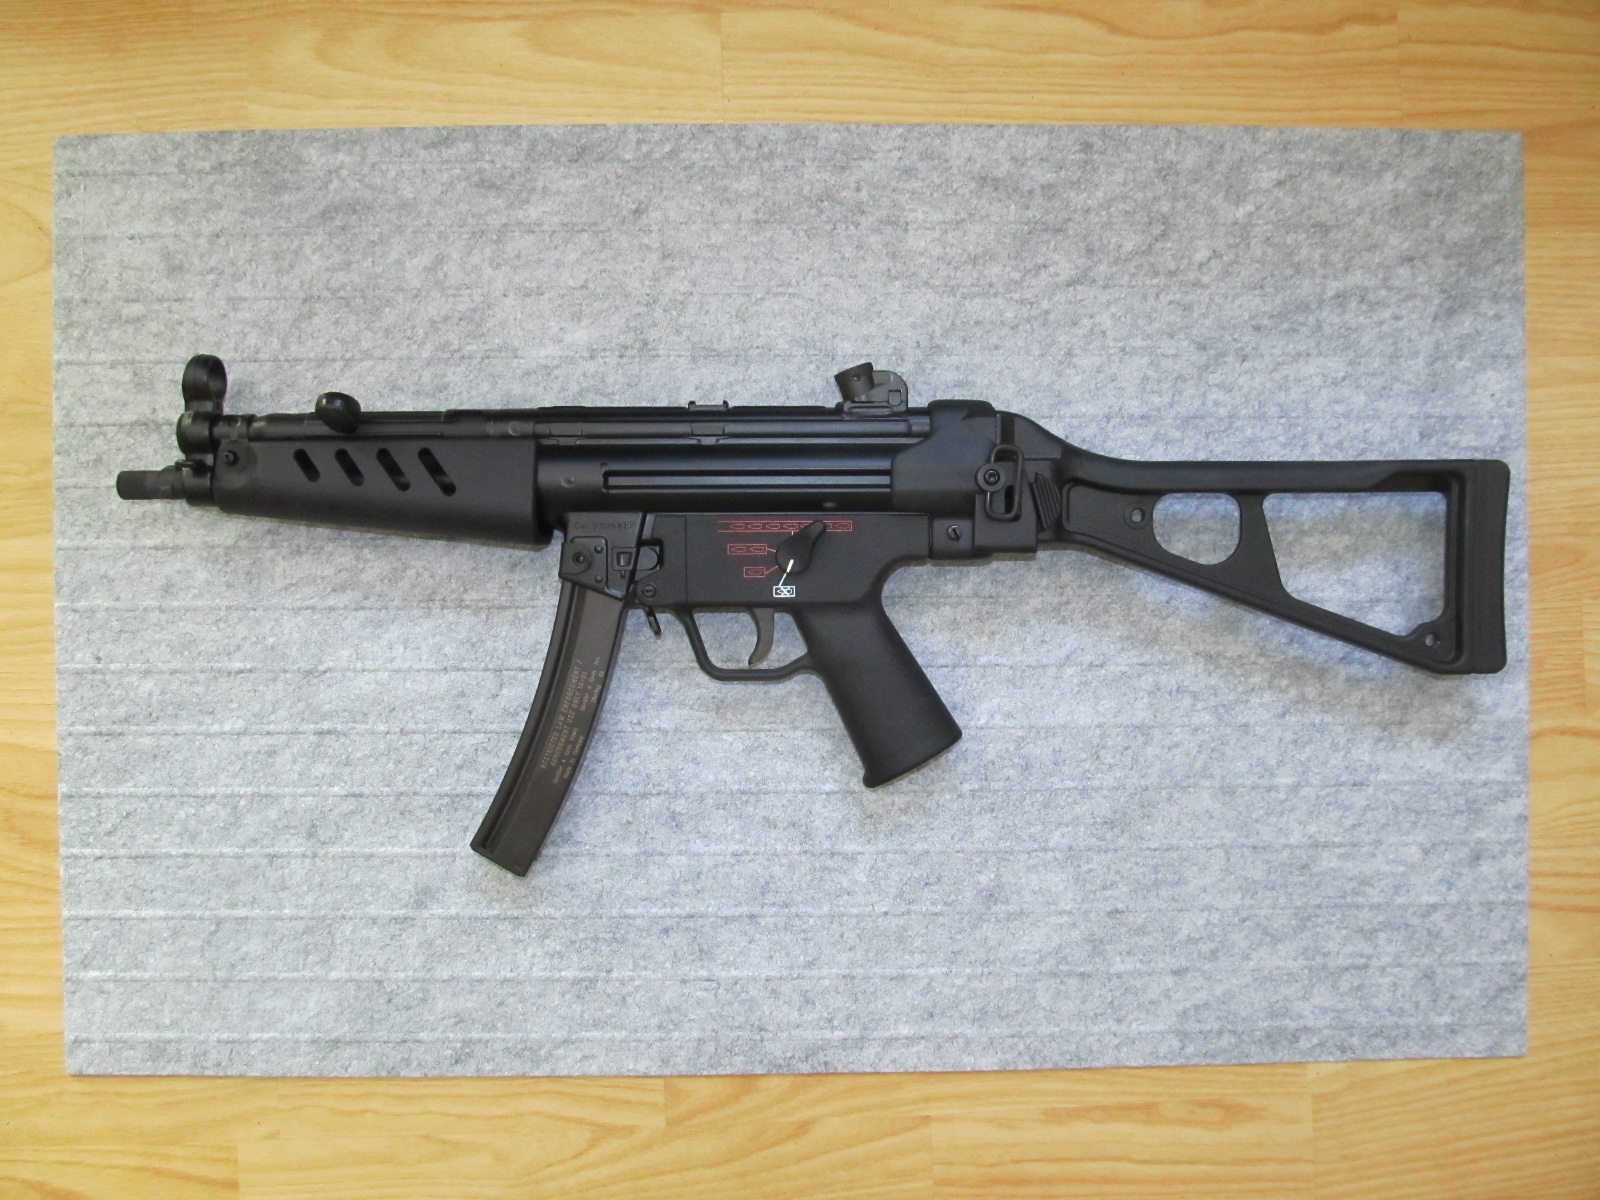 MP5 A3 stock or B&T Stock-img_6207.jpg